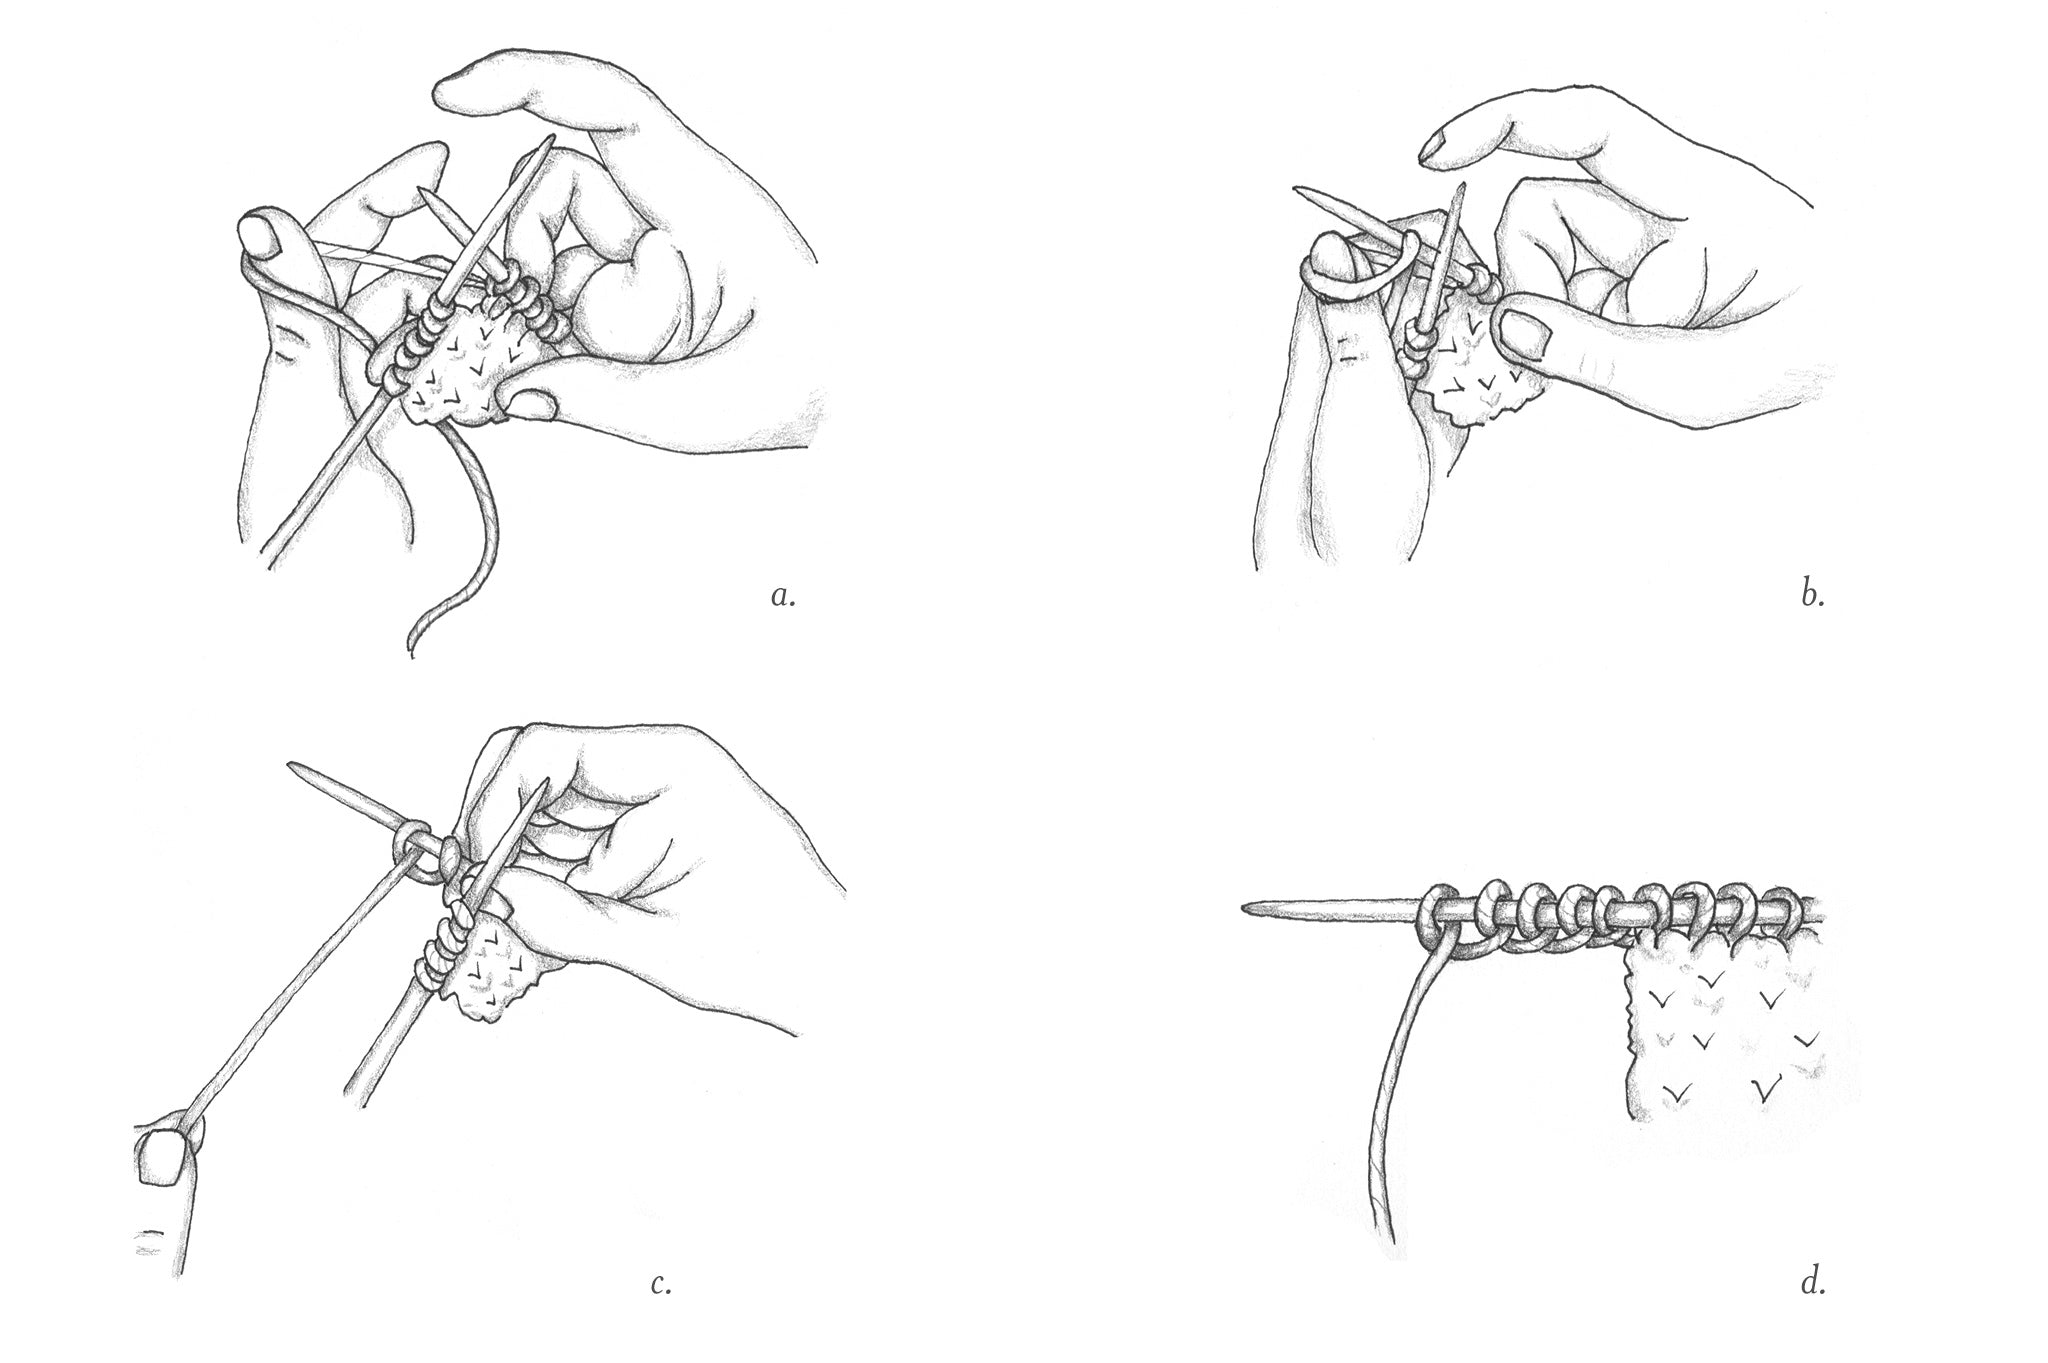 How to gain loops on the needles